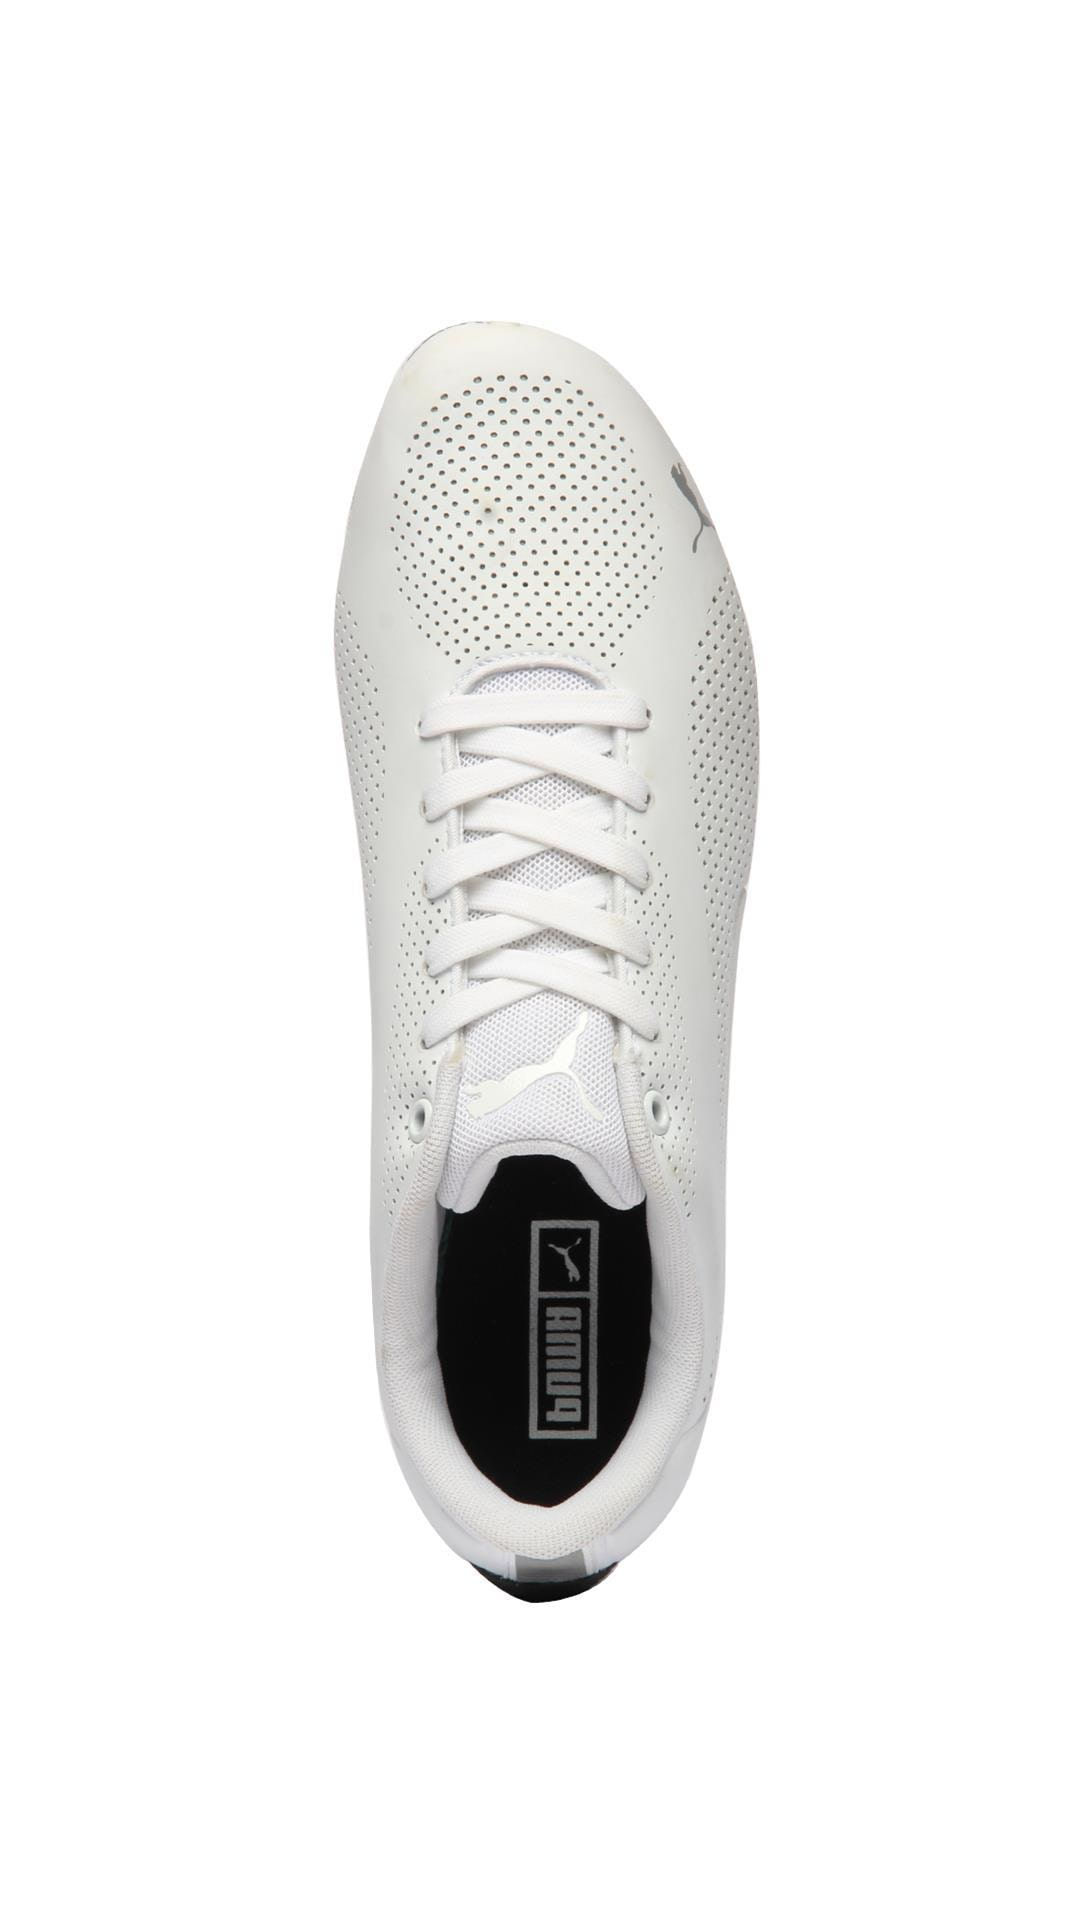 945ffc9e8436d3 Buy Puma Unisex Drift Cat Ultra Reflective White Sneakers Shoes Online at  Low Prices in India - Paytmmall.com